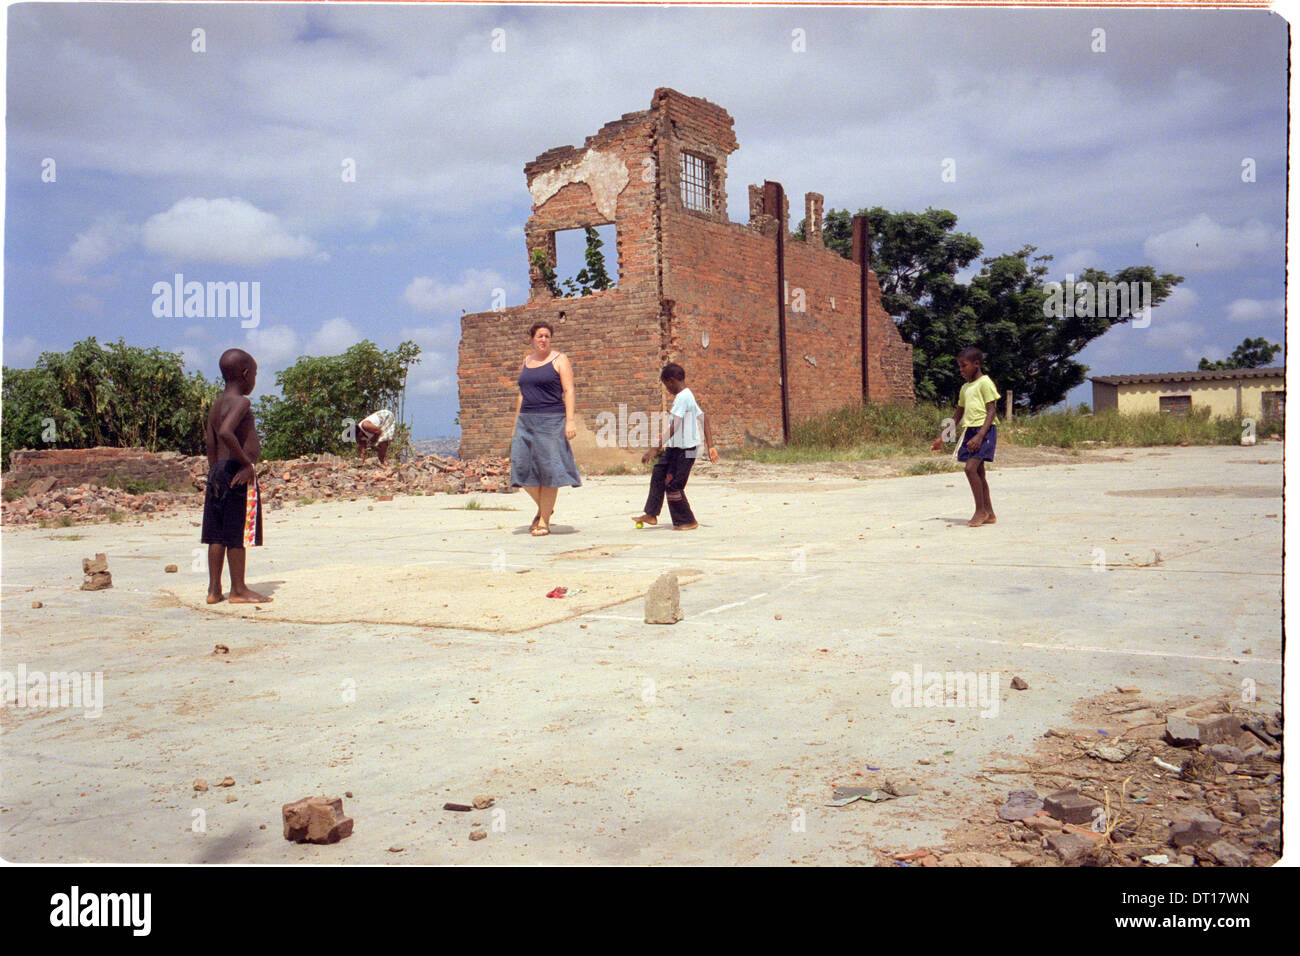 ipjr11041923 urban youth, programs, shelters western volunteer plays ball with children in kwamashu, kwazulu-natal south africa - Stock Image